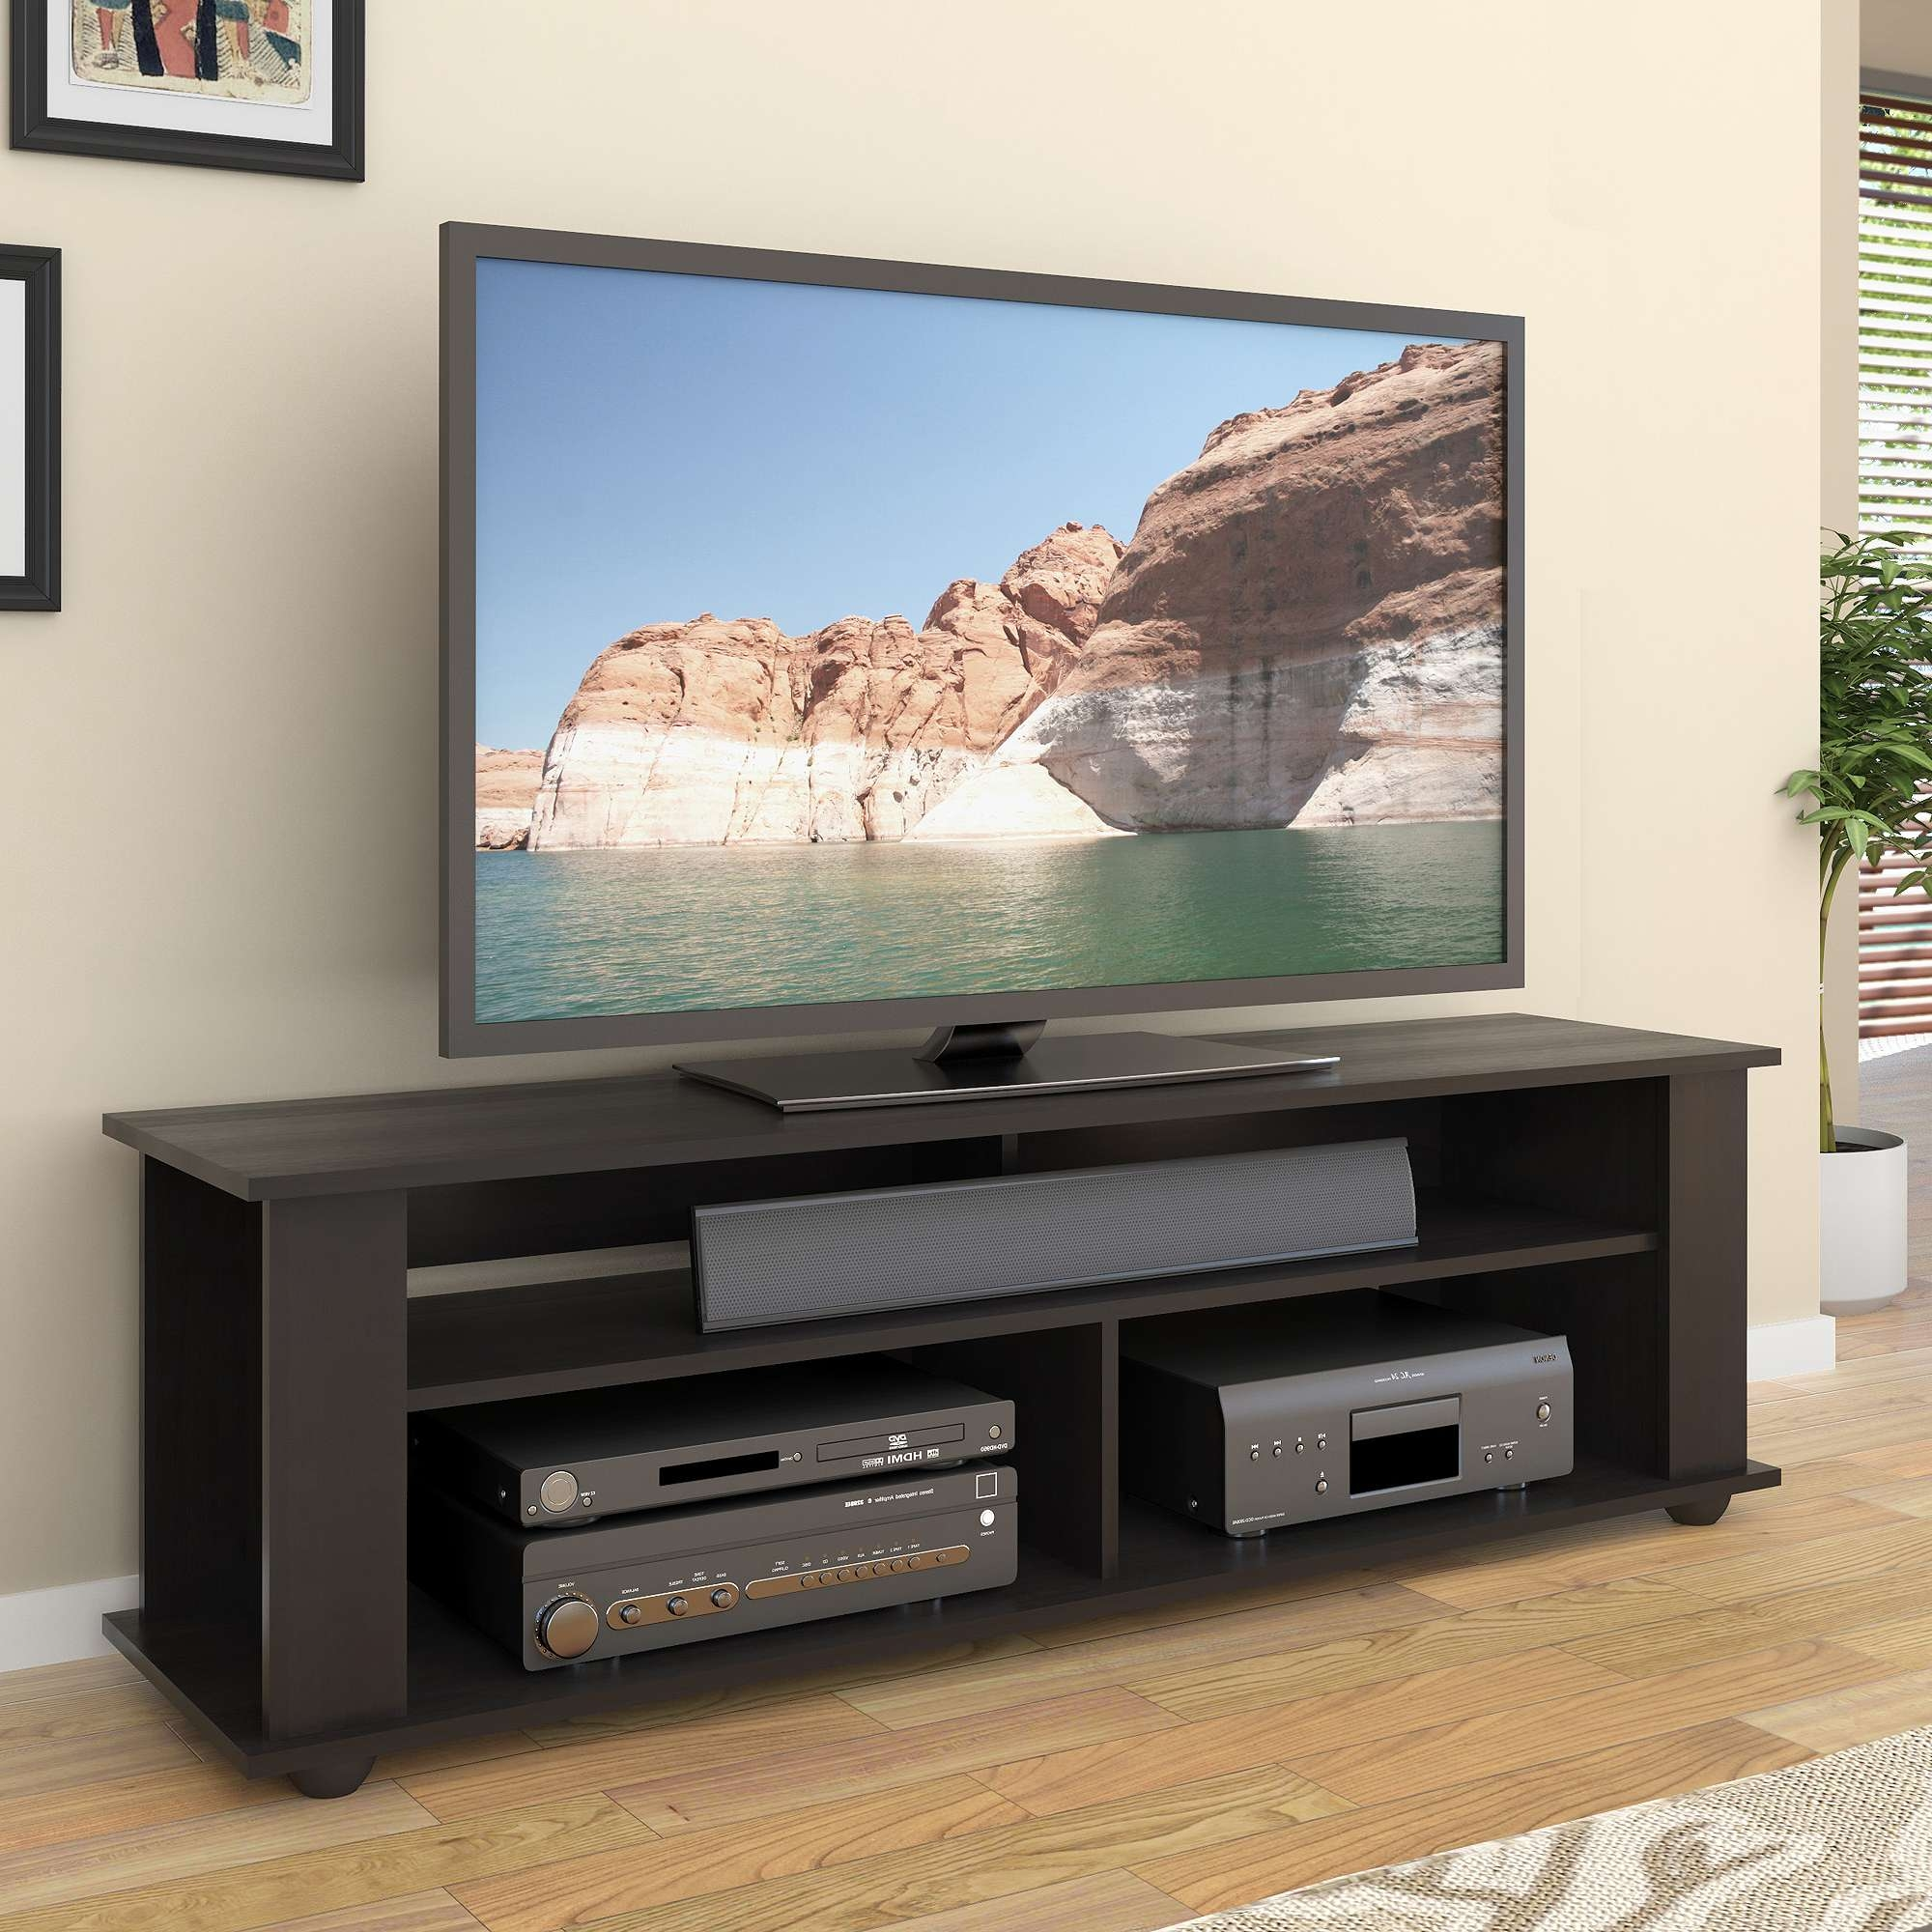 Beautiful Tv Stand For Soundbar 47 For Home Improvement Ideas With In Wide Screen Tv Stands (View 15 of 15)